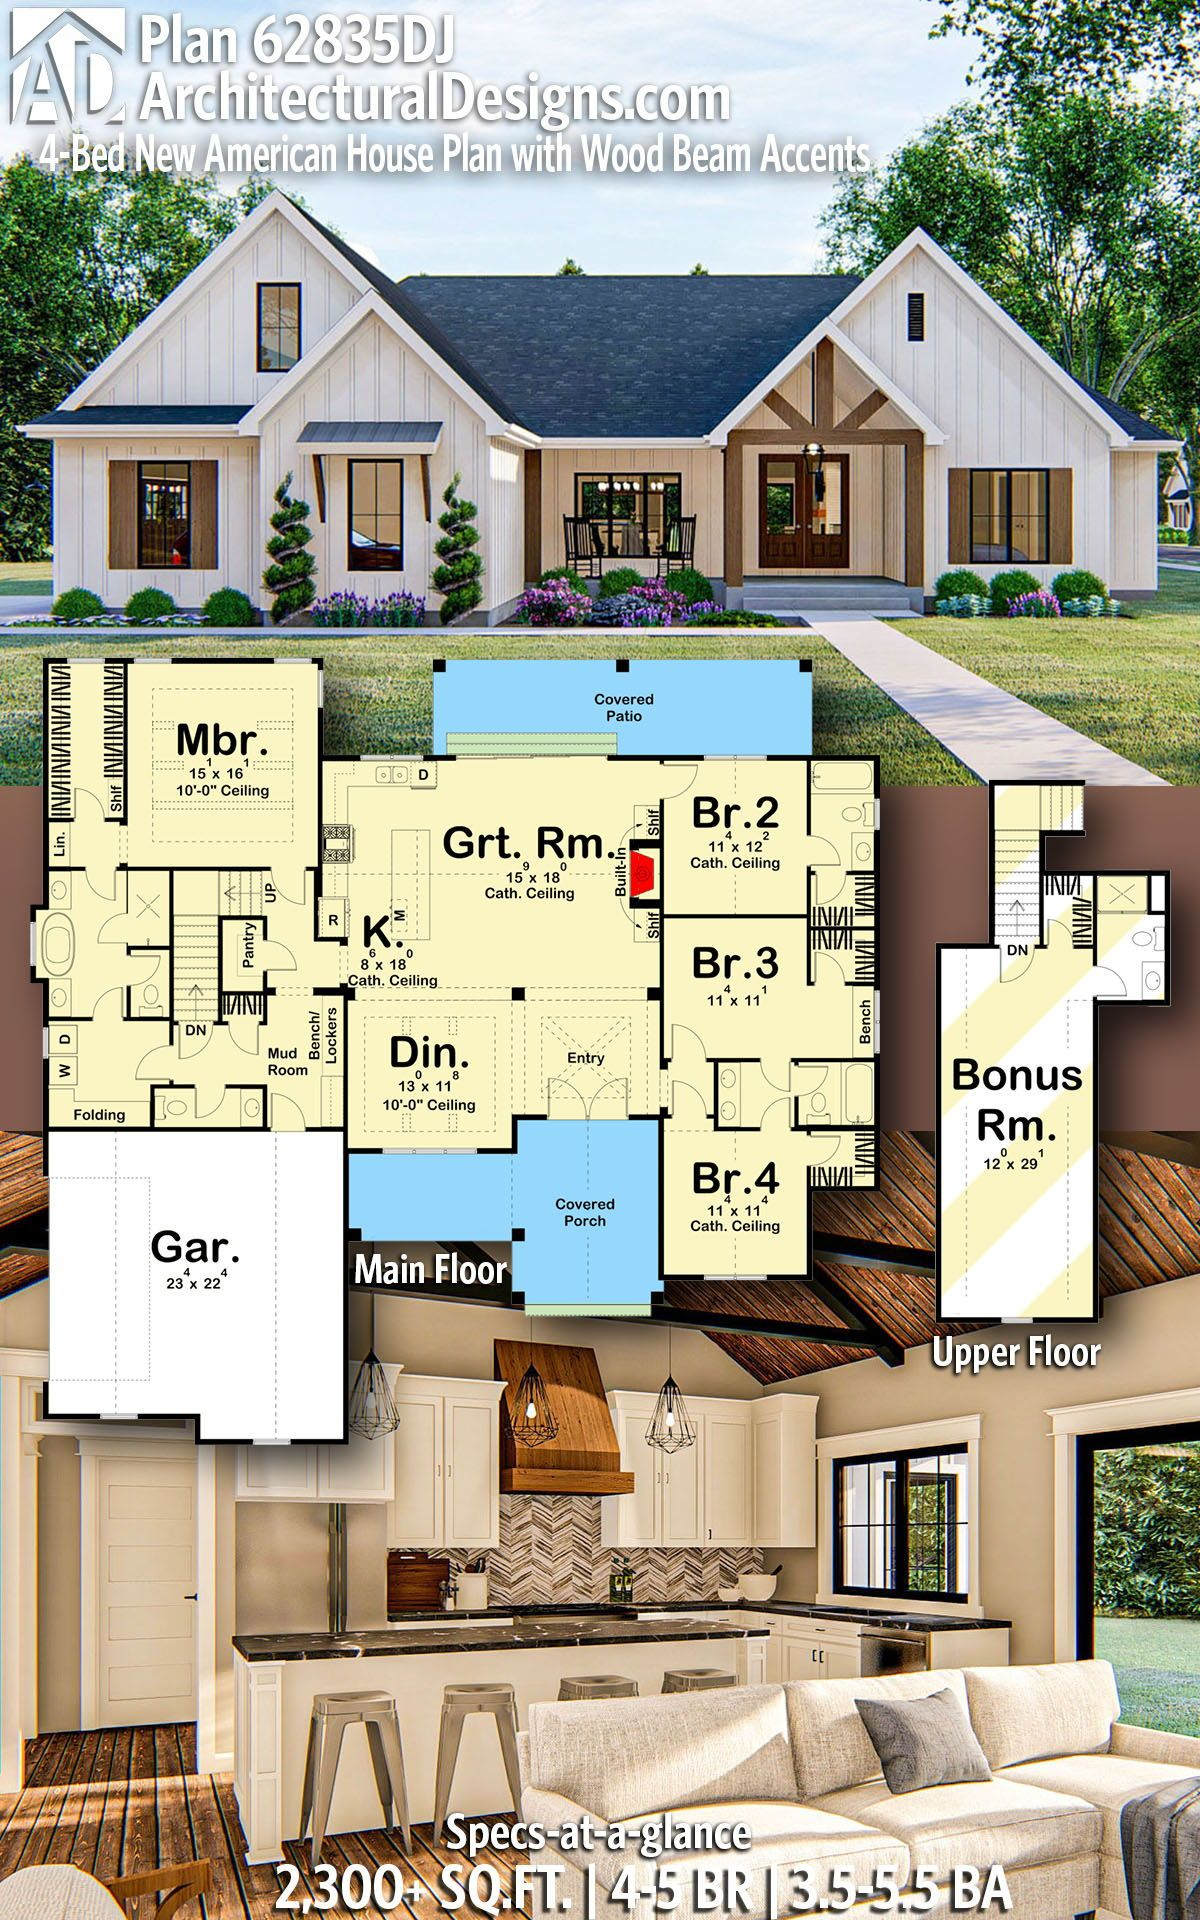 Plan 62835dj 4 Bed New American House Plan With Wood Beam Accents In 2020 Craftsman House Plans House Plans Farmhouse House Blueprints